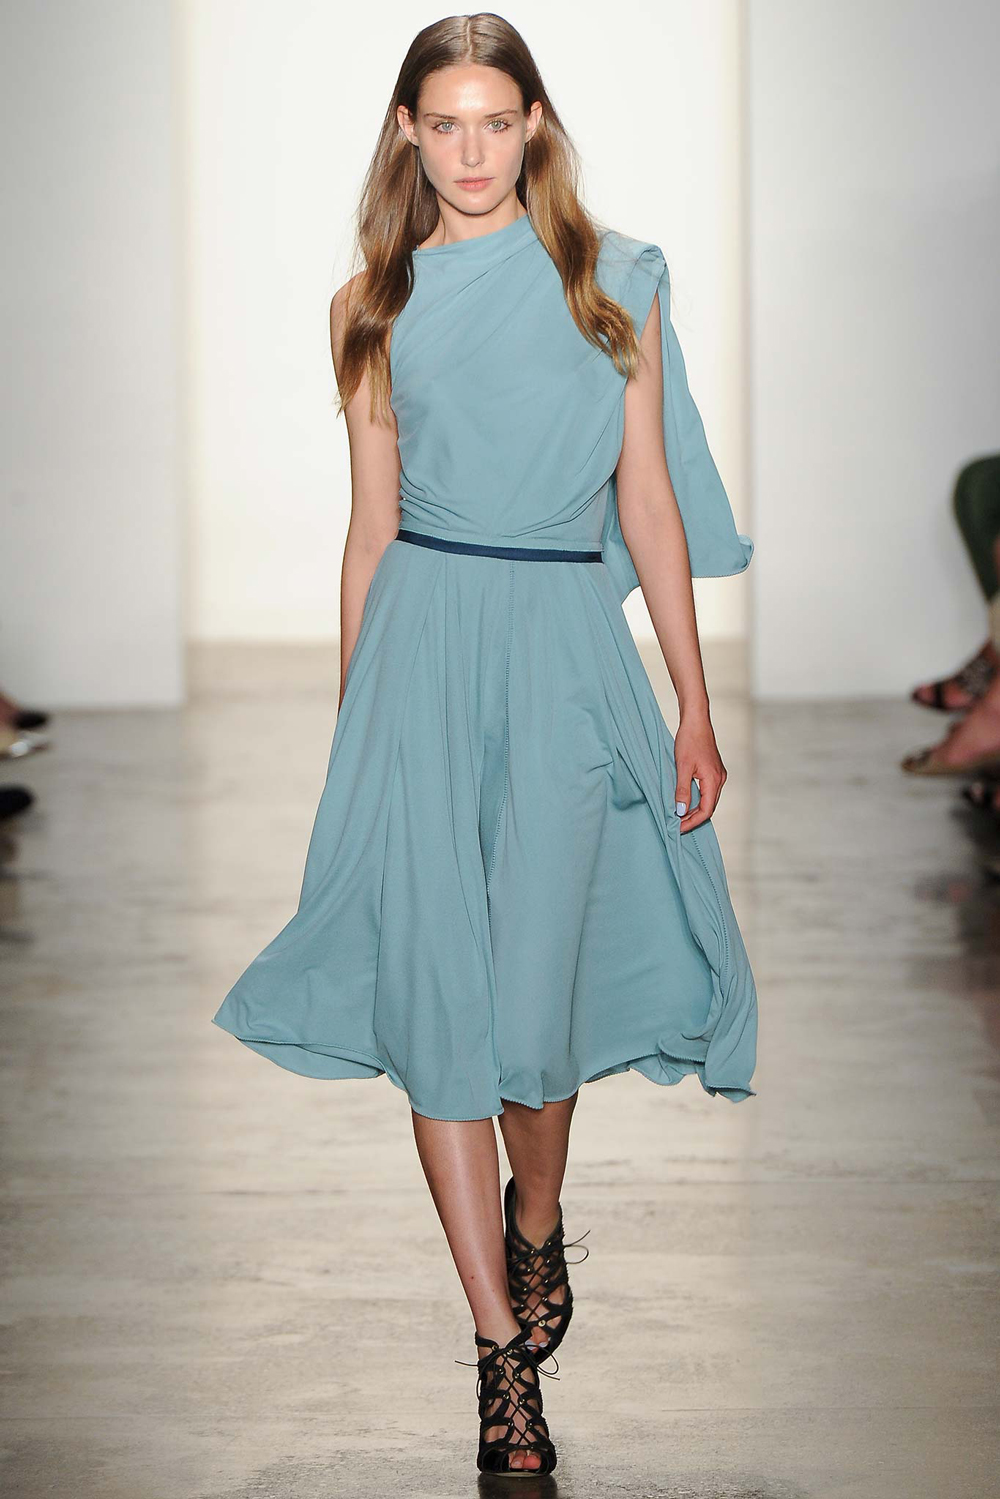 Pantone Colour Report Spring 2015 trends / aquamarine / how to wear aquamarine / outfit ideas / fashion collections S/S 2015 / Costello Tagliapietra Spring 2015 / via fashioned by love british fashion blog